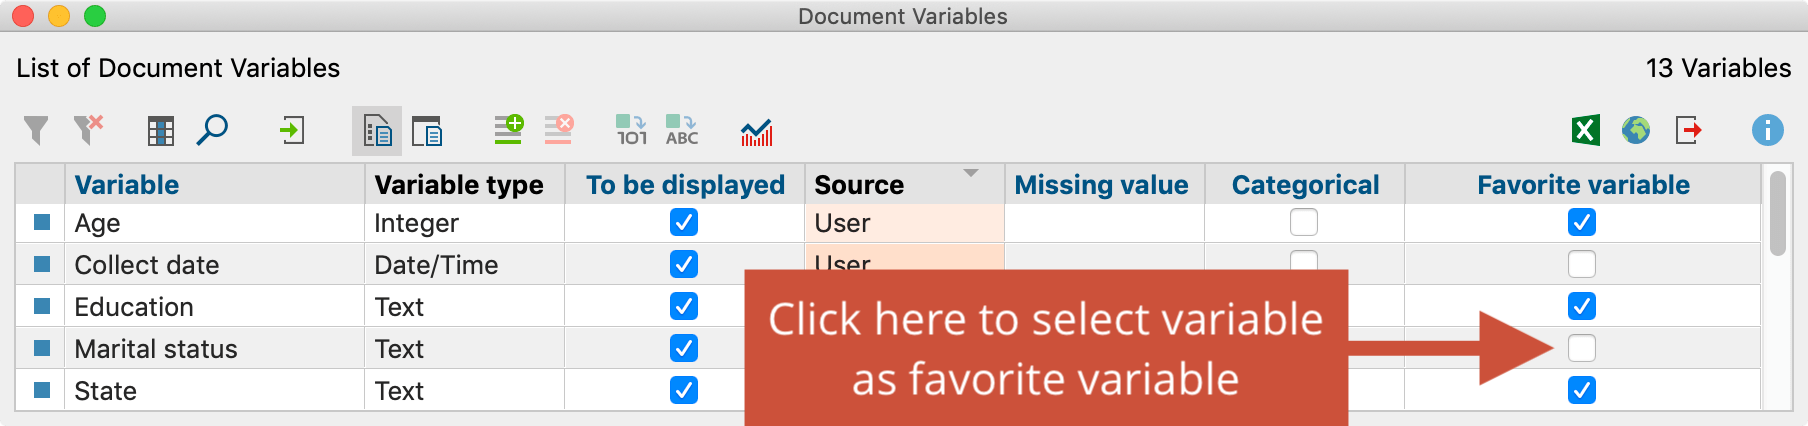 Select document variable as favorite variable